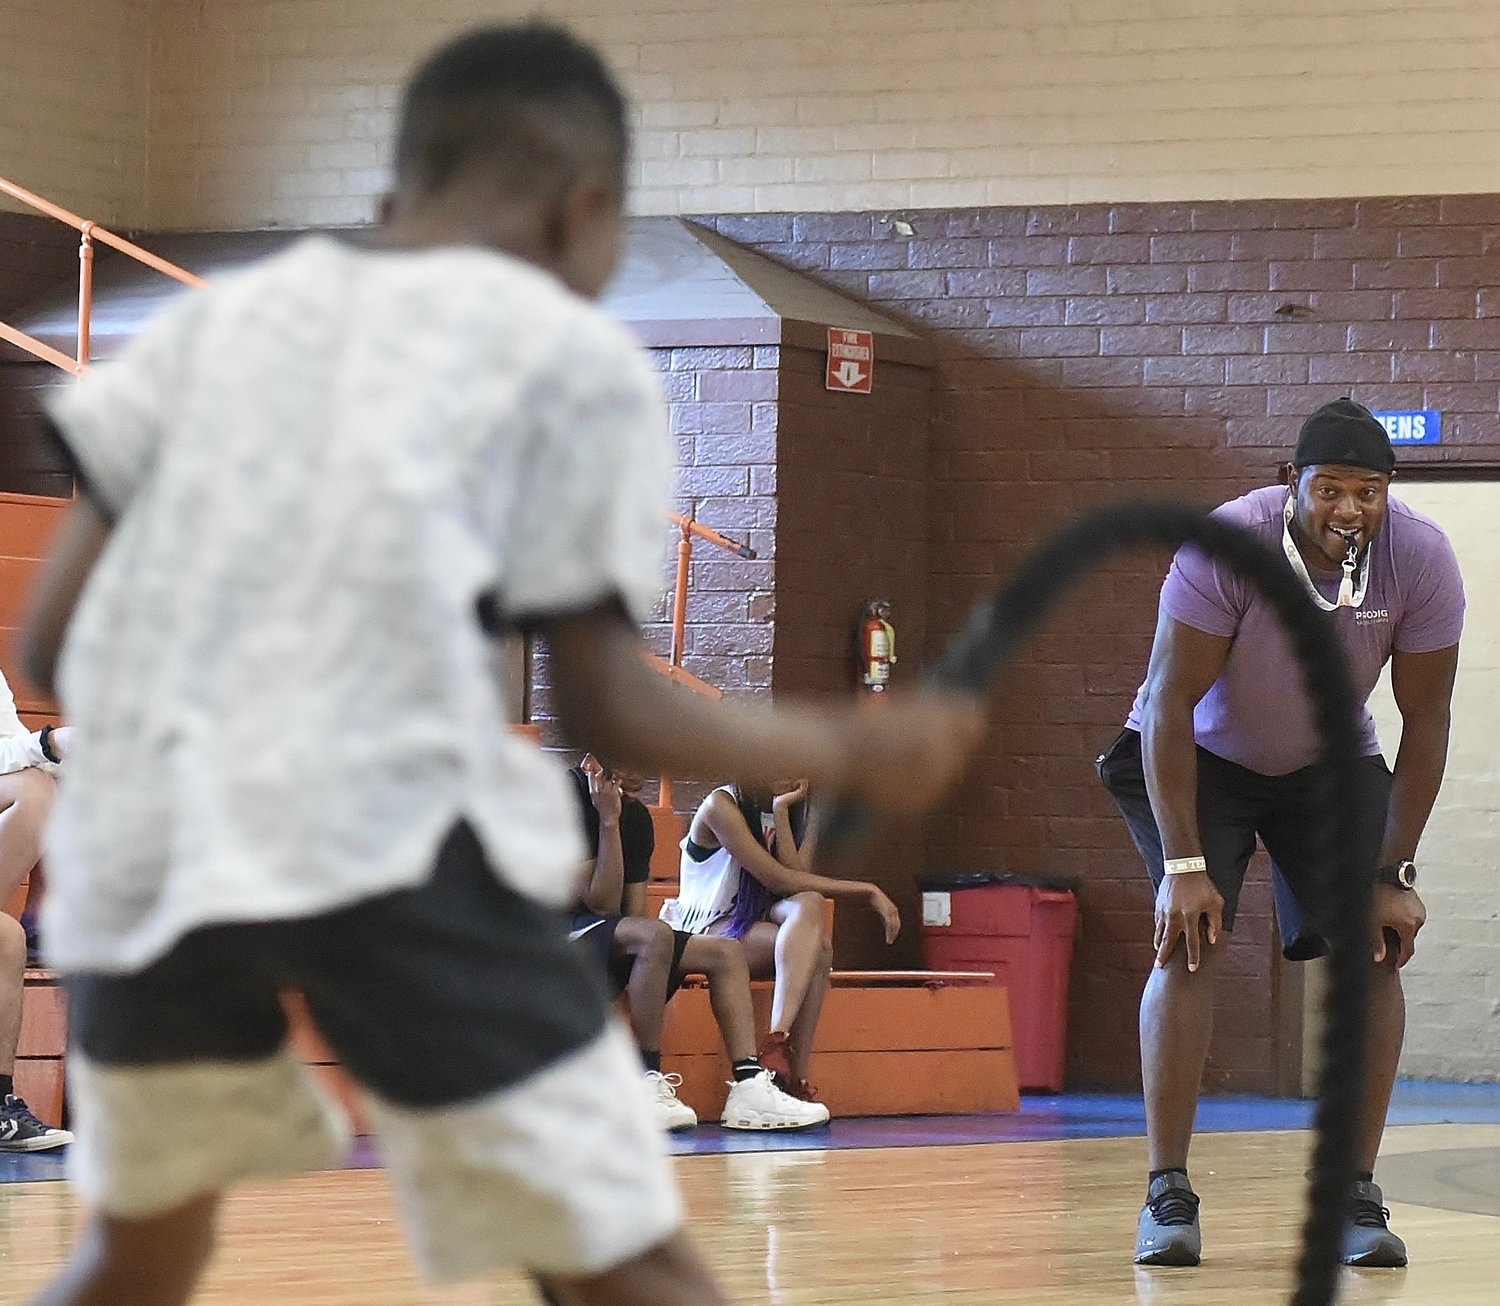 Certified sports performance coach, personal trainer, and Cartersville High graduate A.T. Barnes, right, was on hand to instruct the Track and Fitness camp at the J.H. Morgan Gym June 5 to 7.